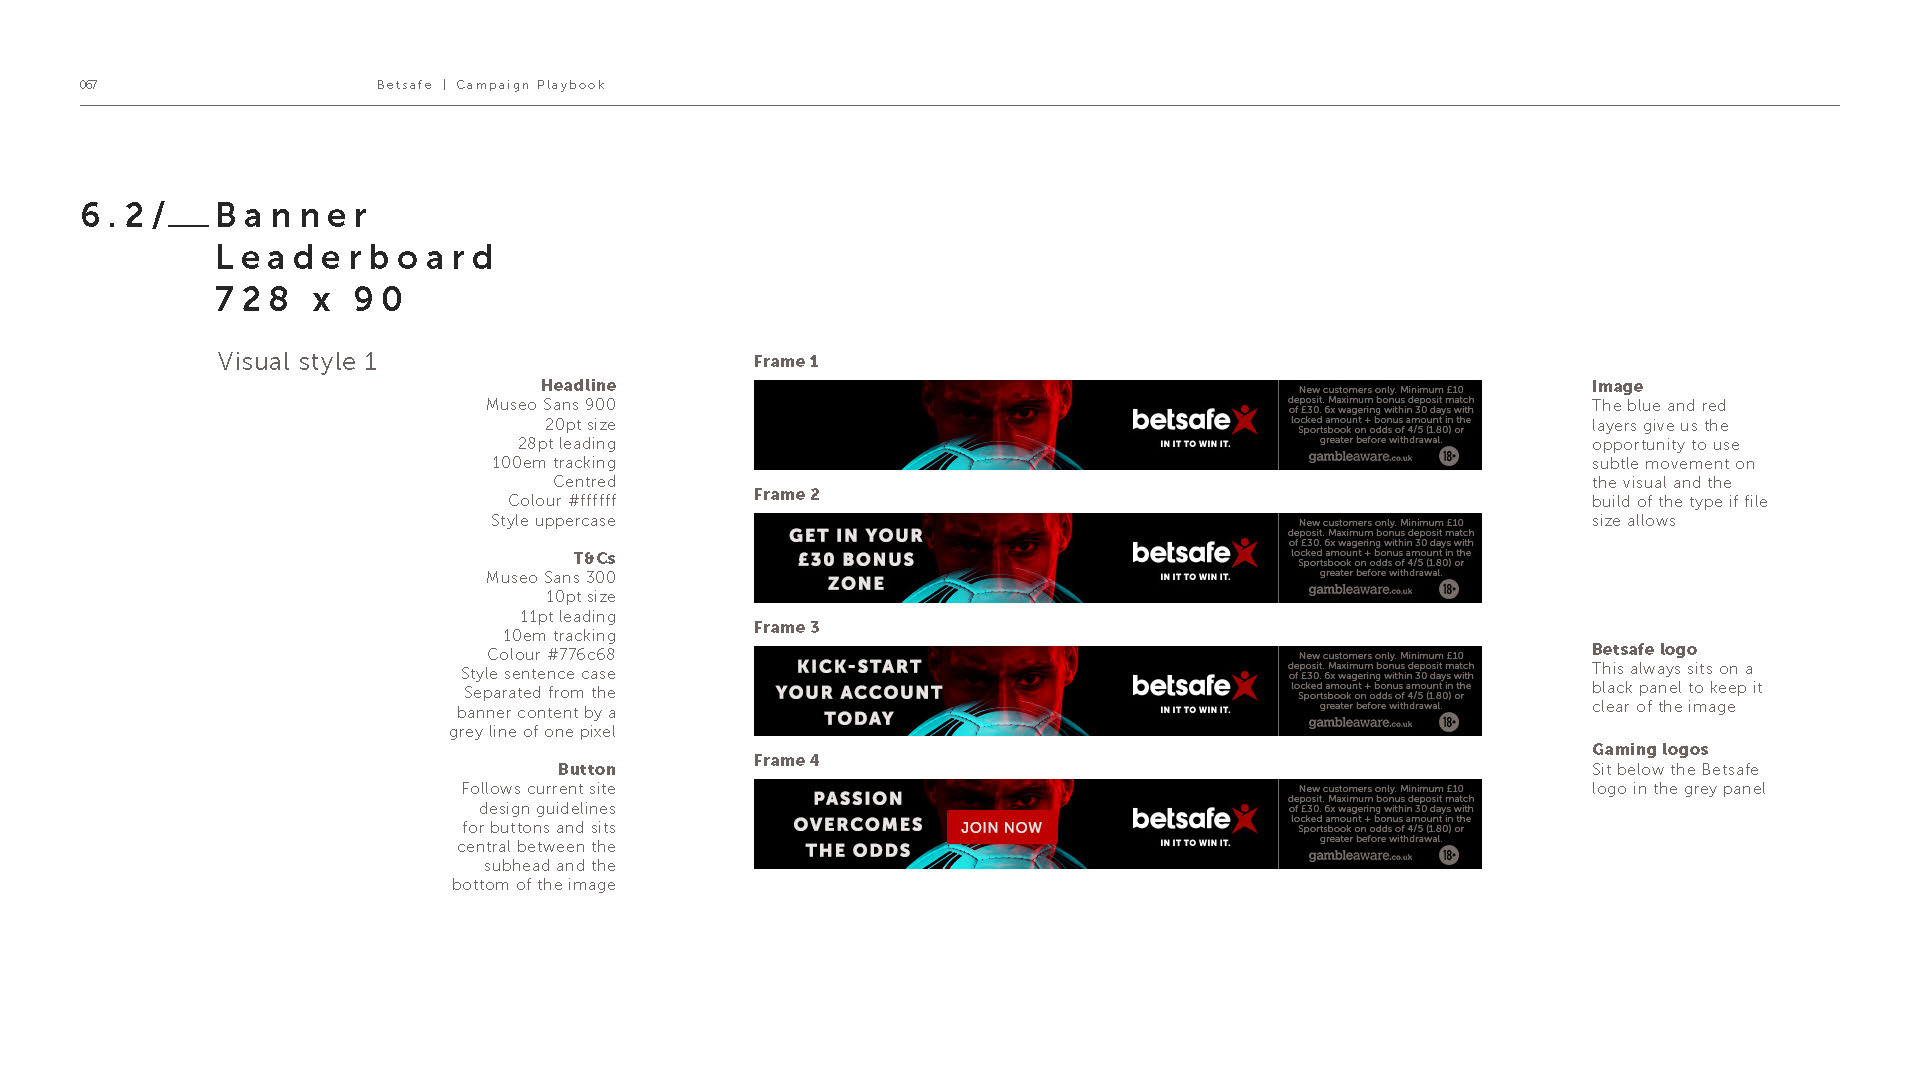 BETSAFE_GUIDELINES_DH_11-5_Page_67.jpg